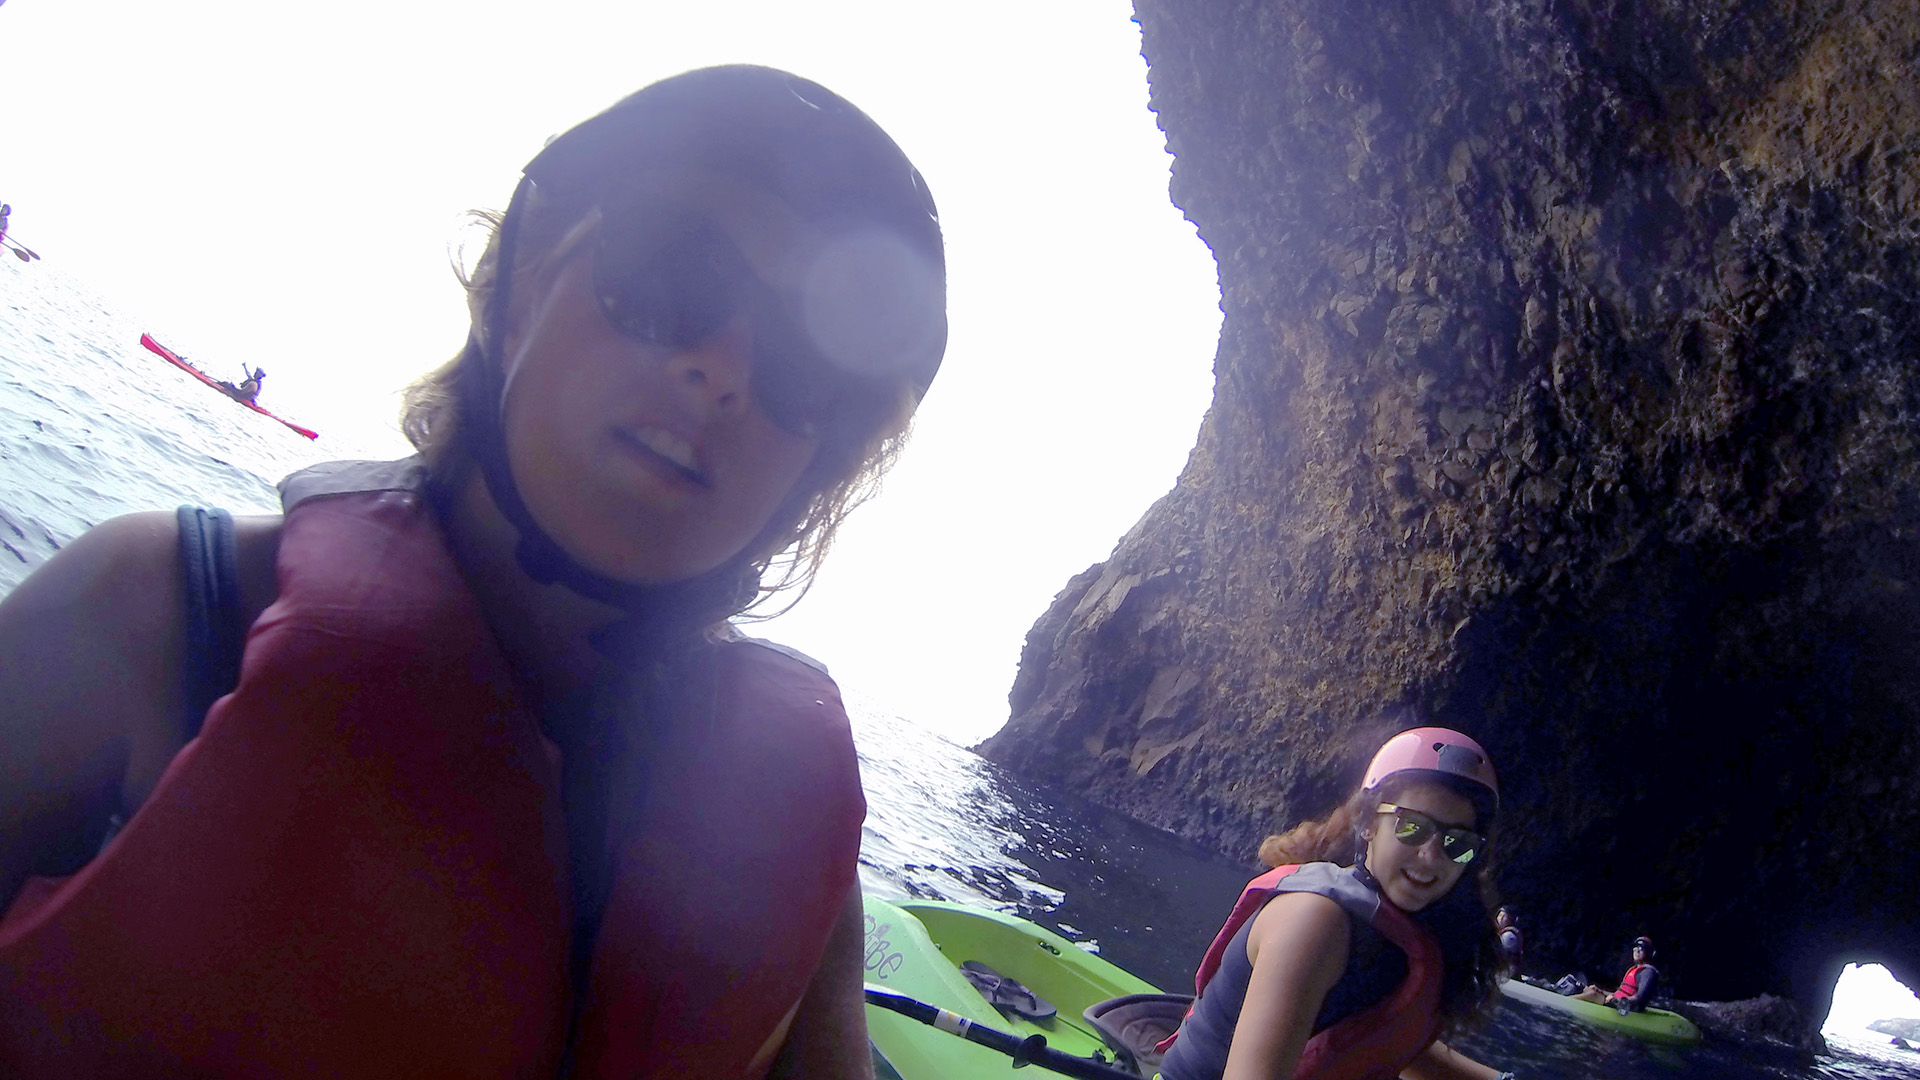 Stefanie Kuisle & Zeinab Greif kayaking inside a sea cave at Santa Cruz island